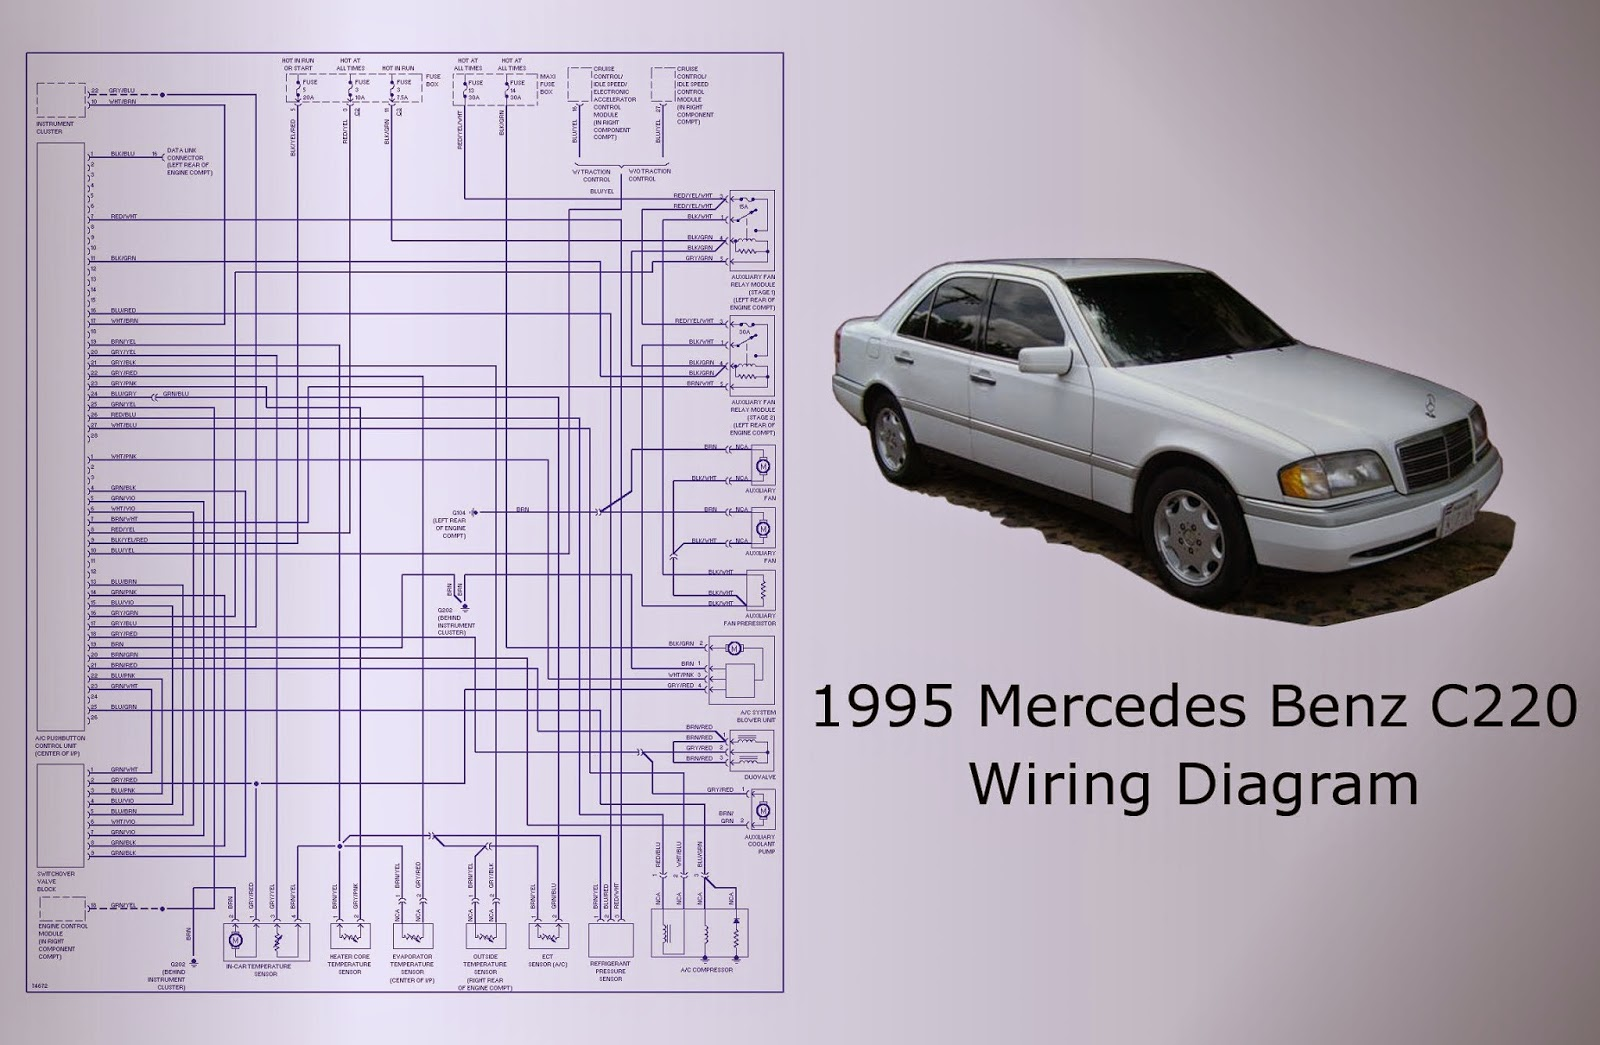 1995 mercedes benz c220 wiring diagram auto wiring diagrams